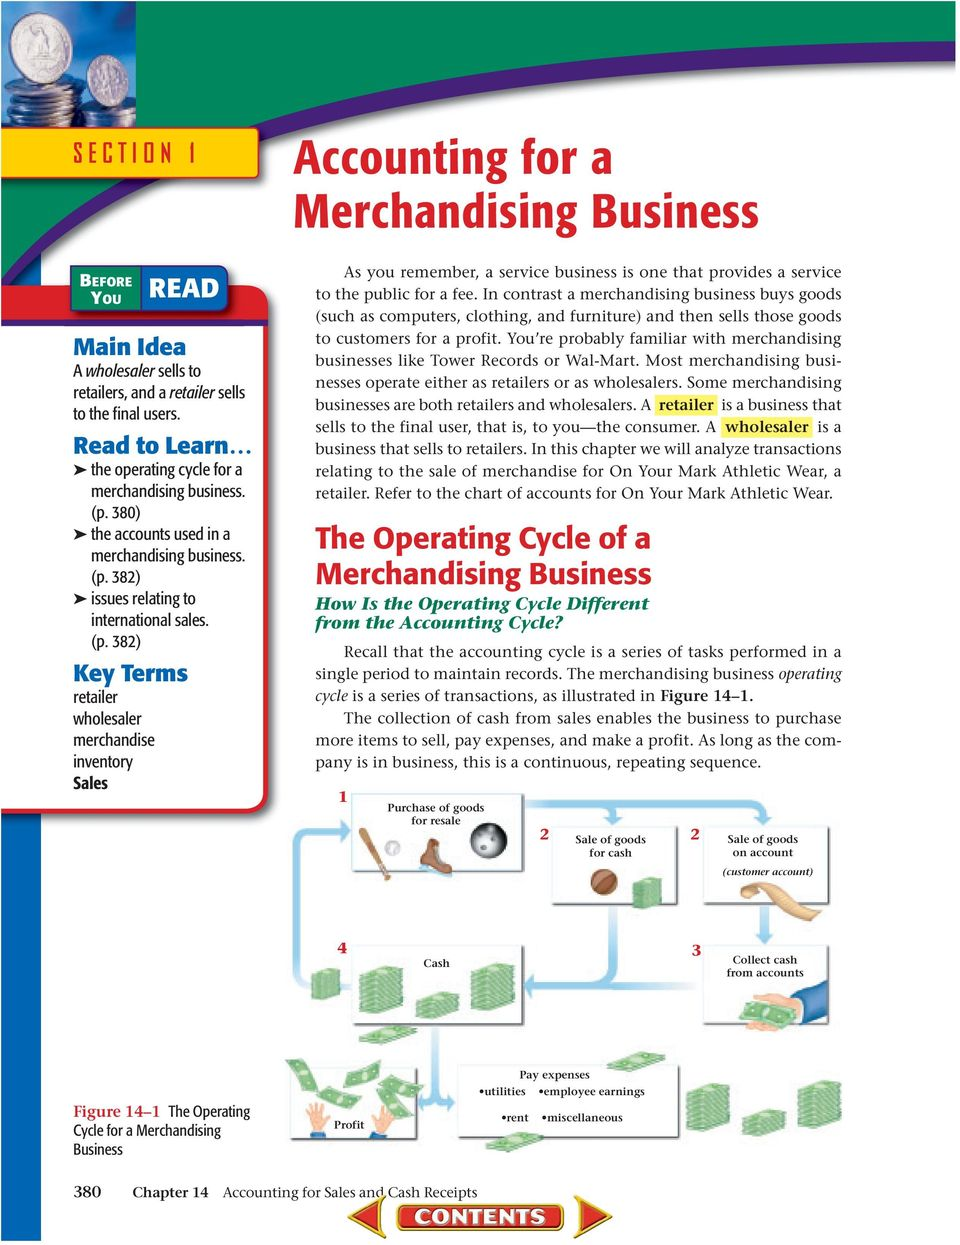 380) the accounts used in a merchandising business. (p.